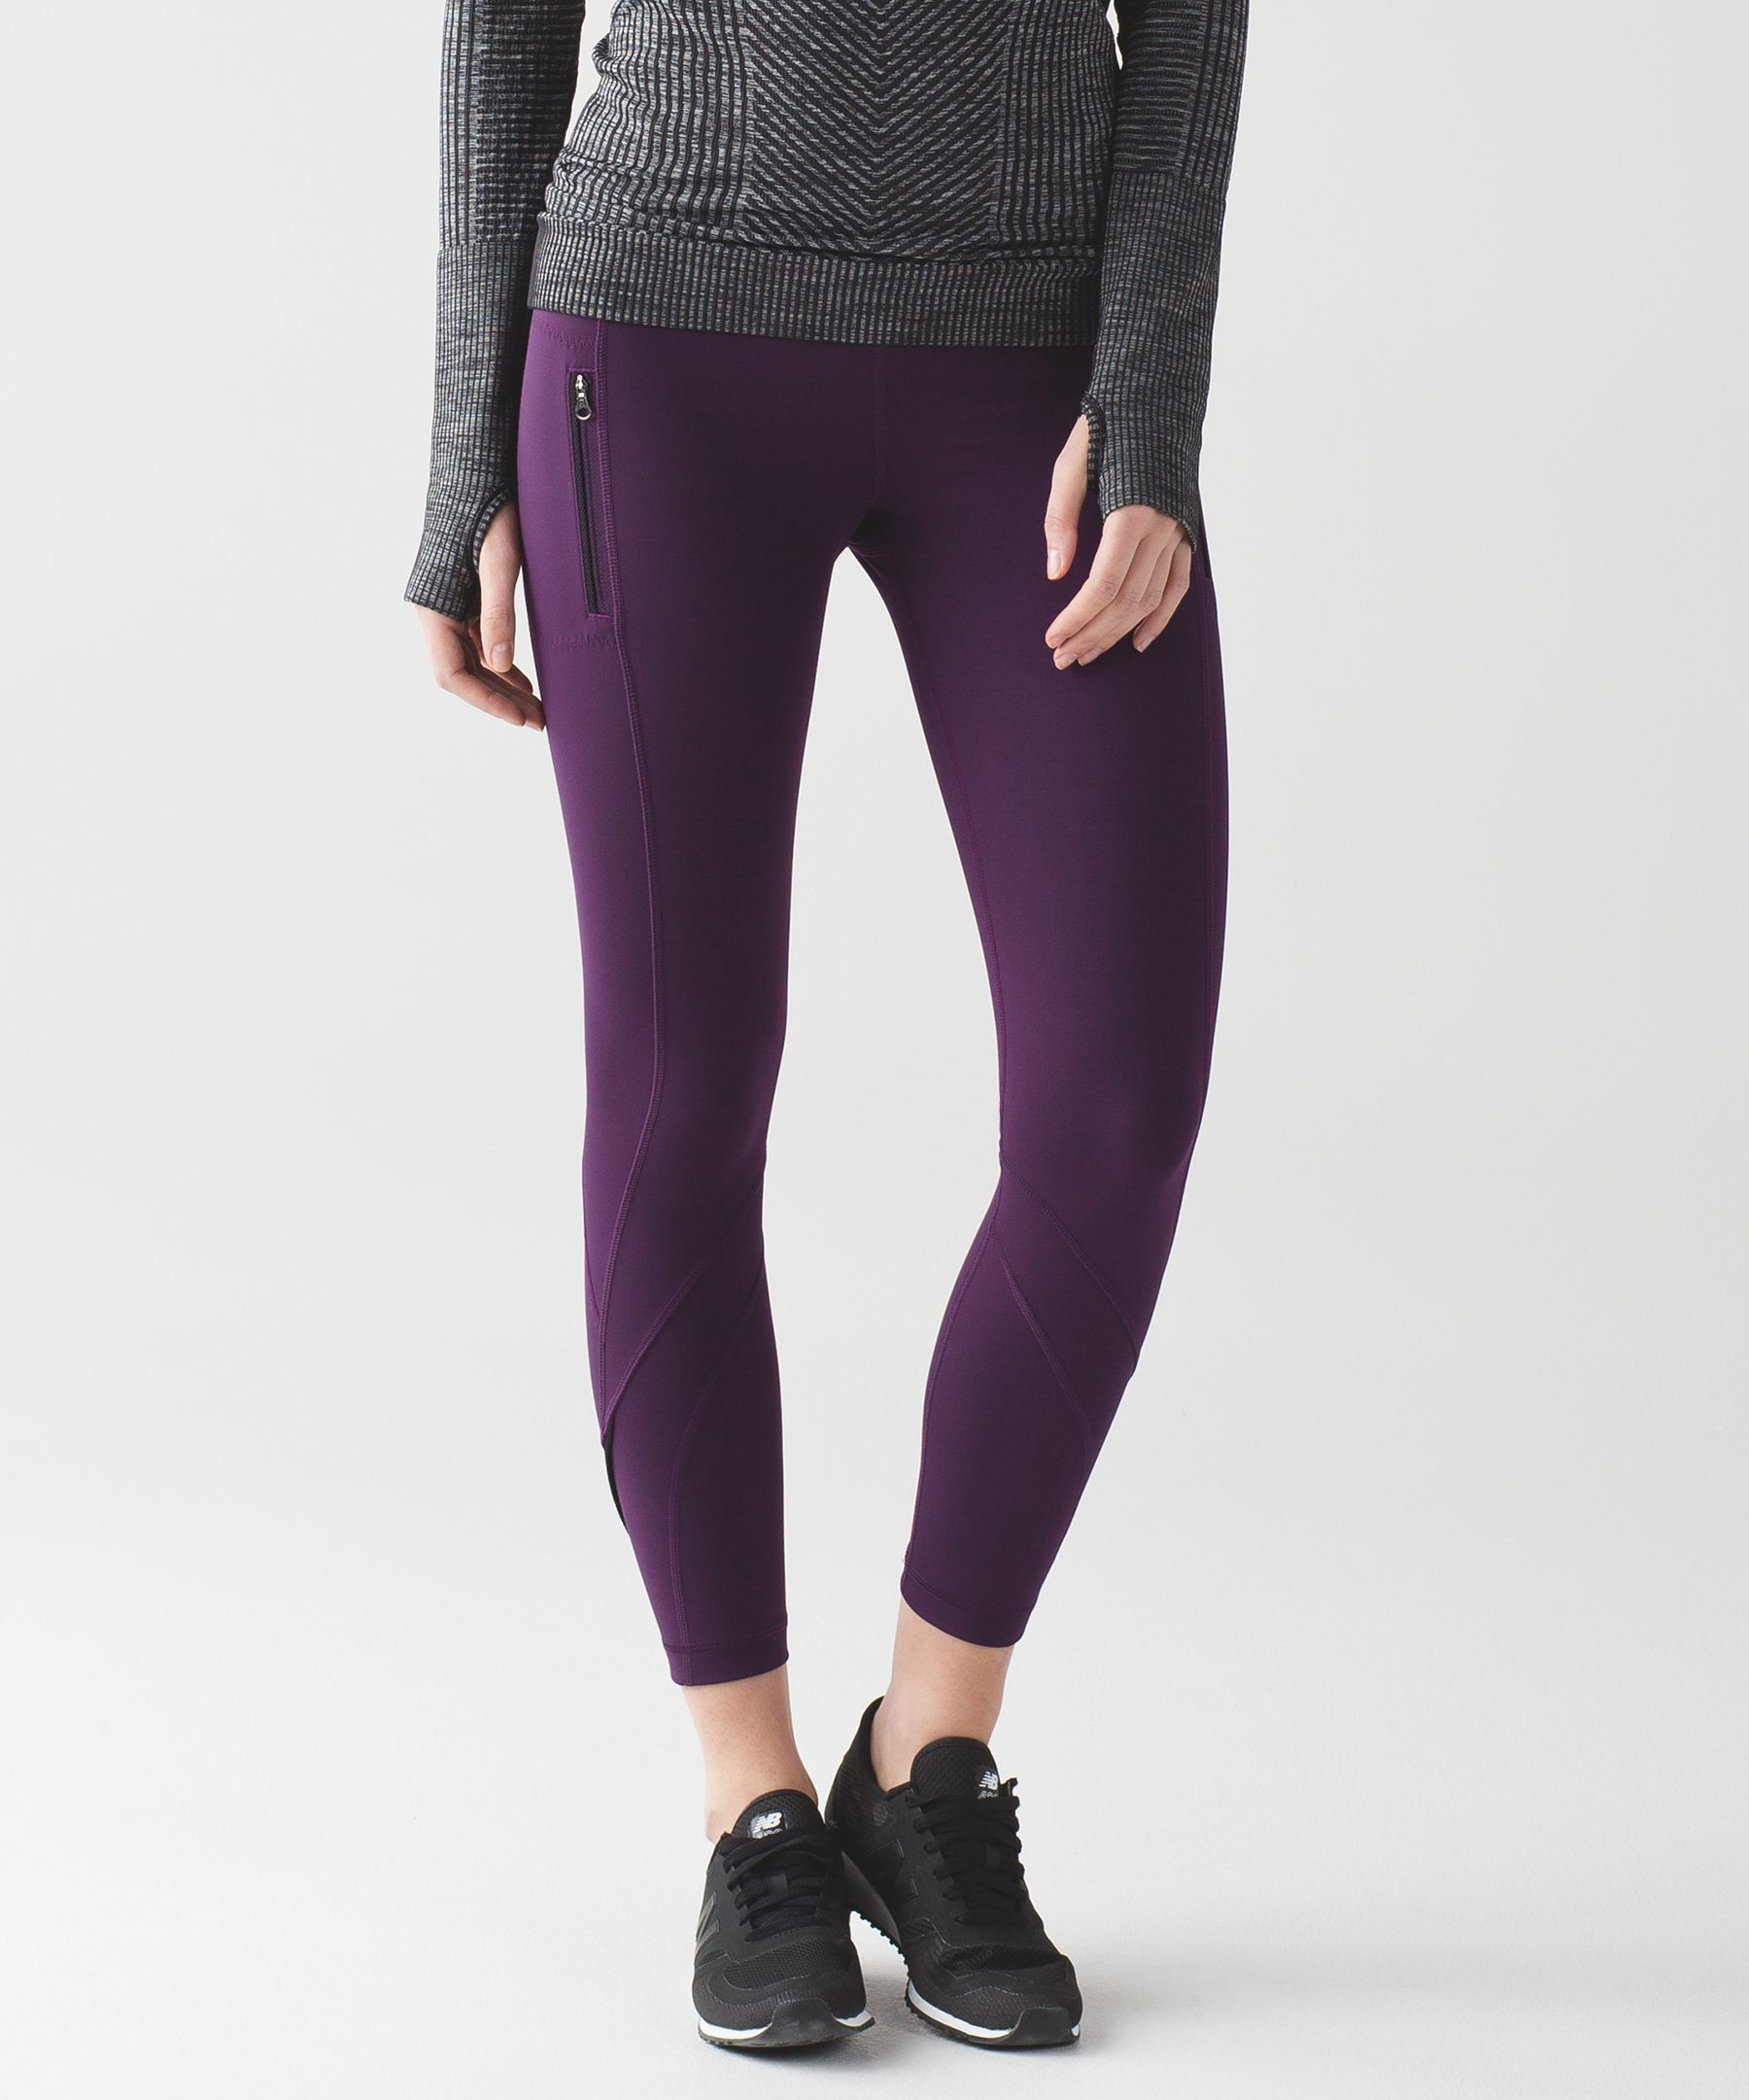 Inspire Tight II *Brushed